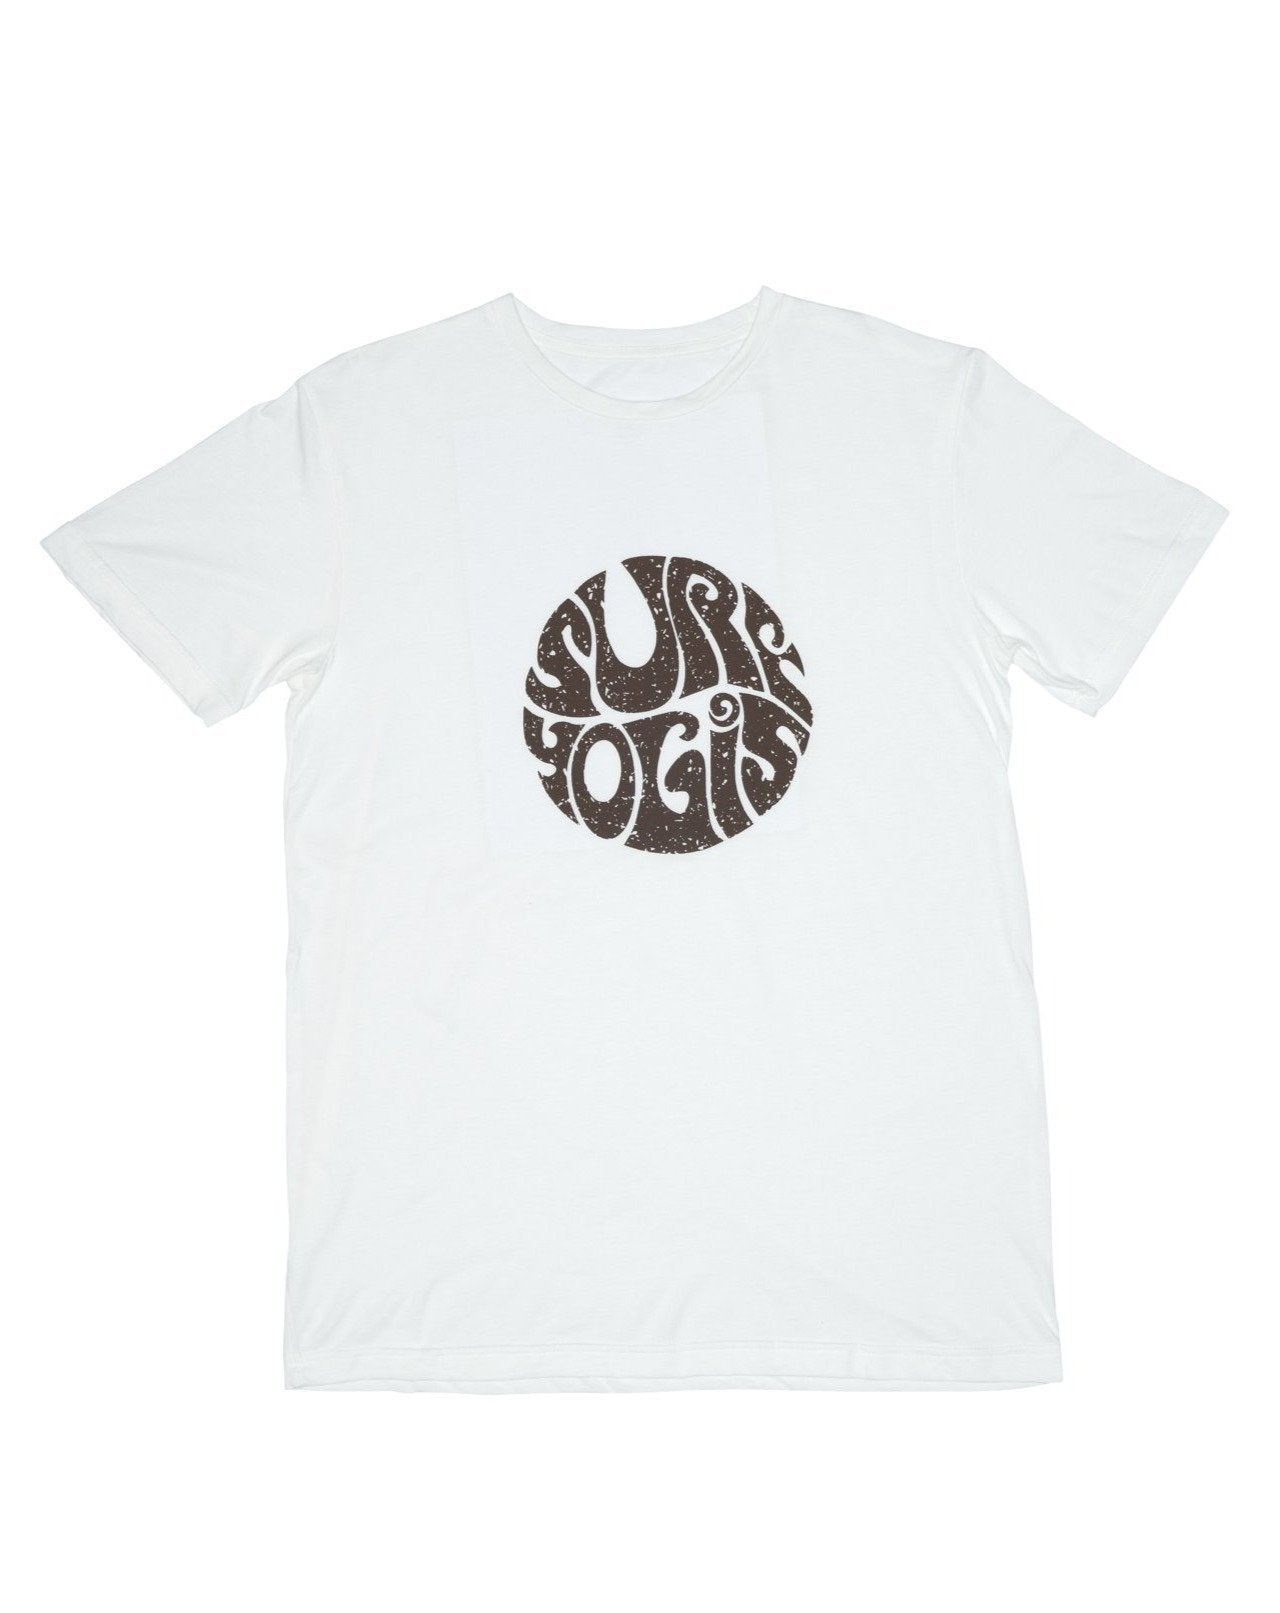 White classic t-shirt. Brown Surfyogis logo across chest. Vintage look print.